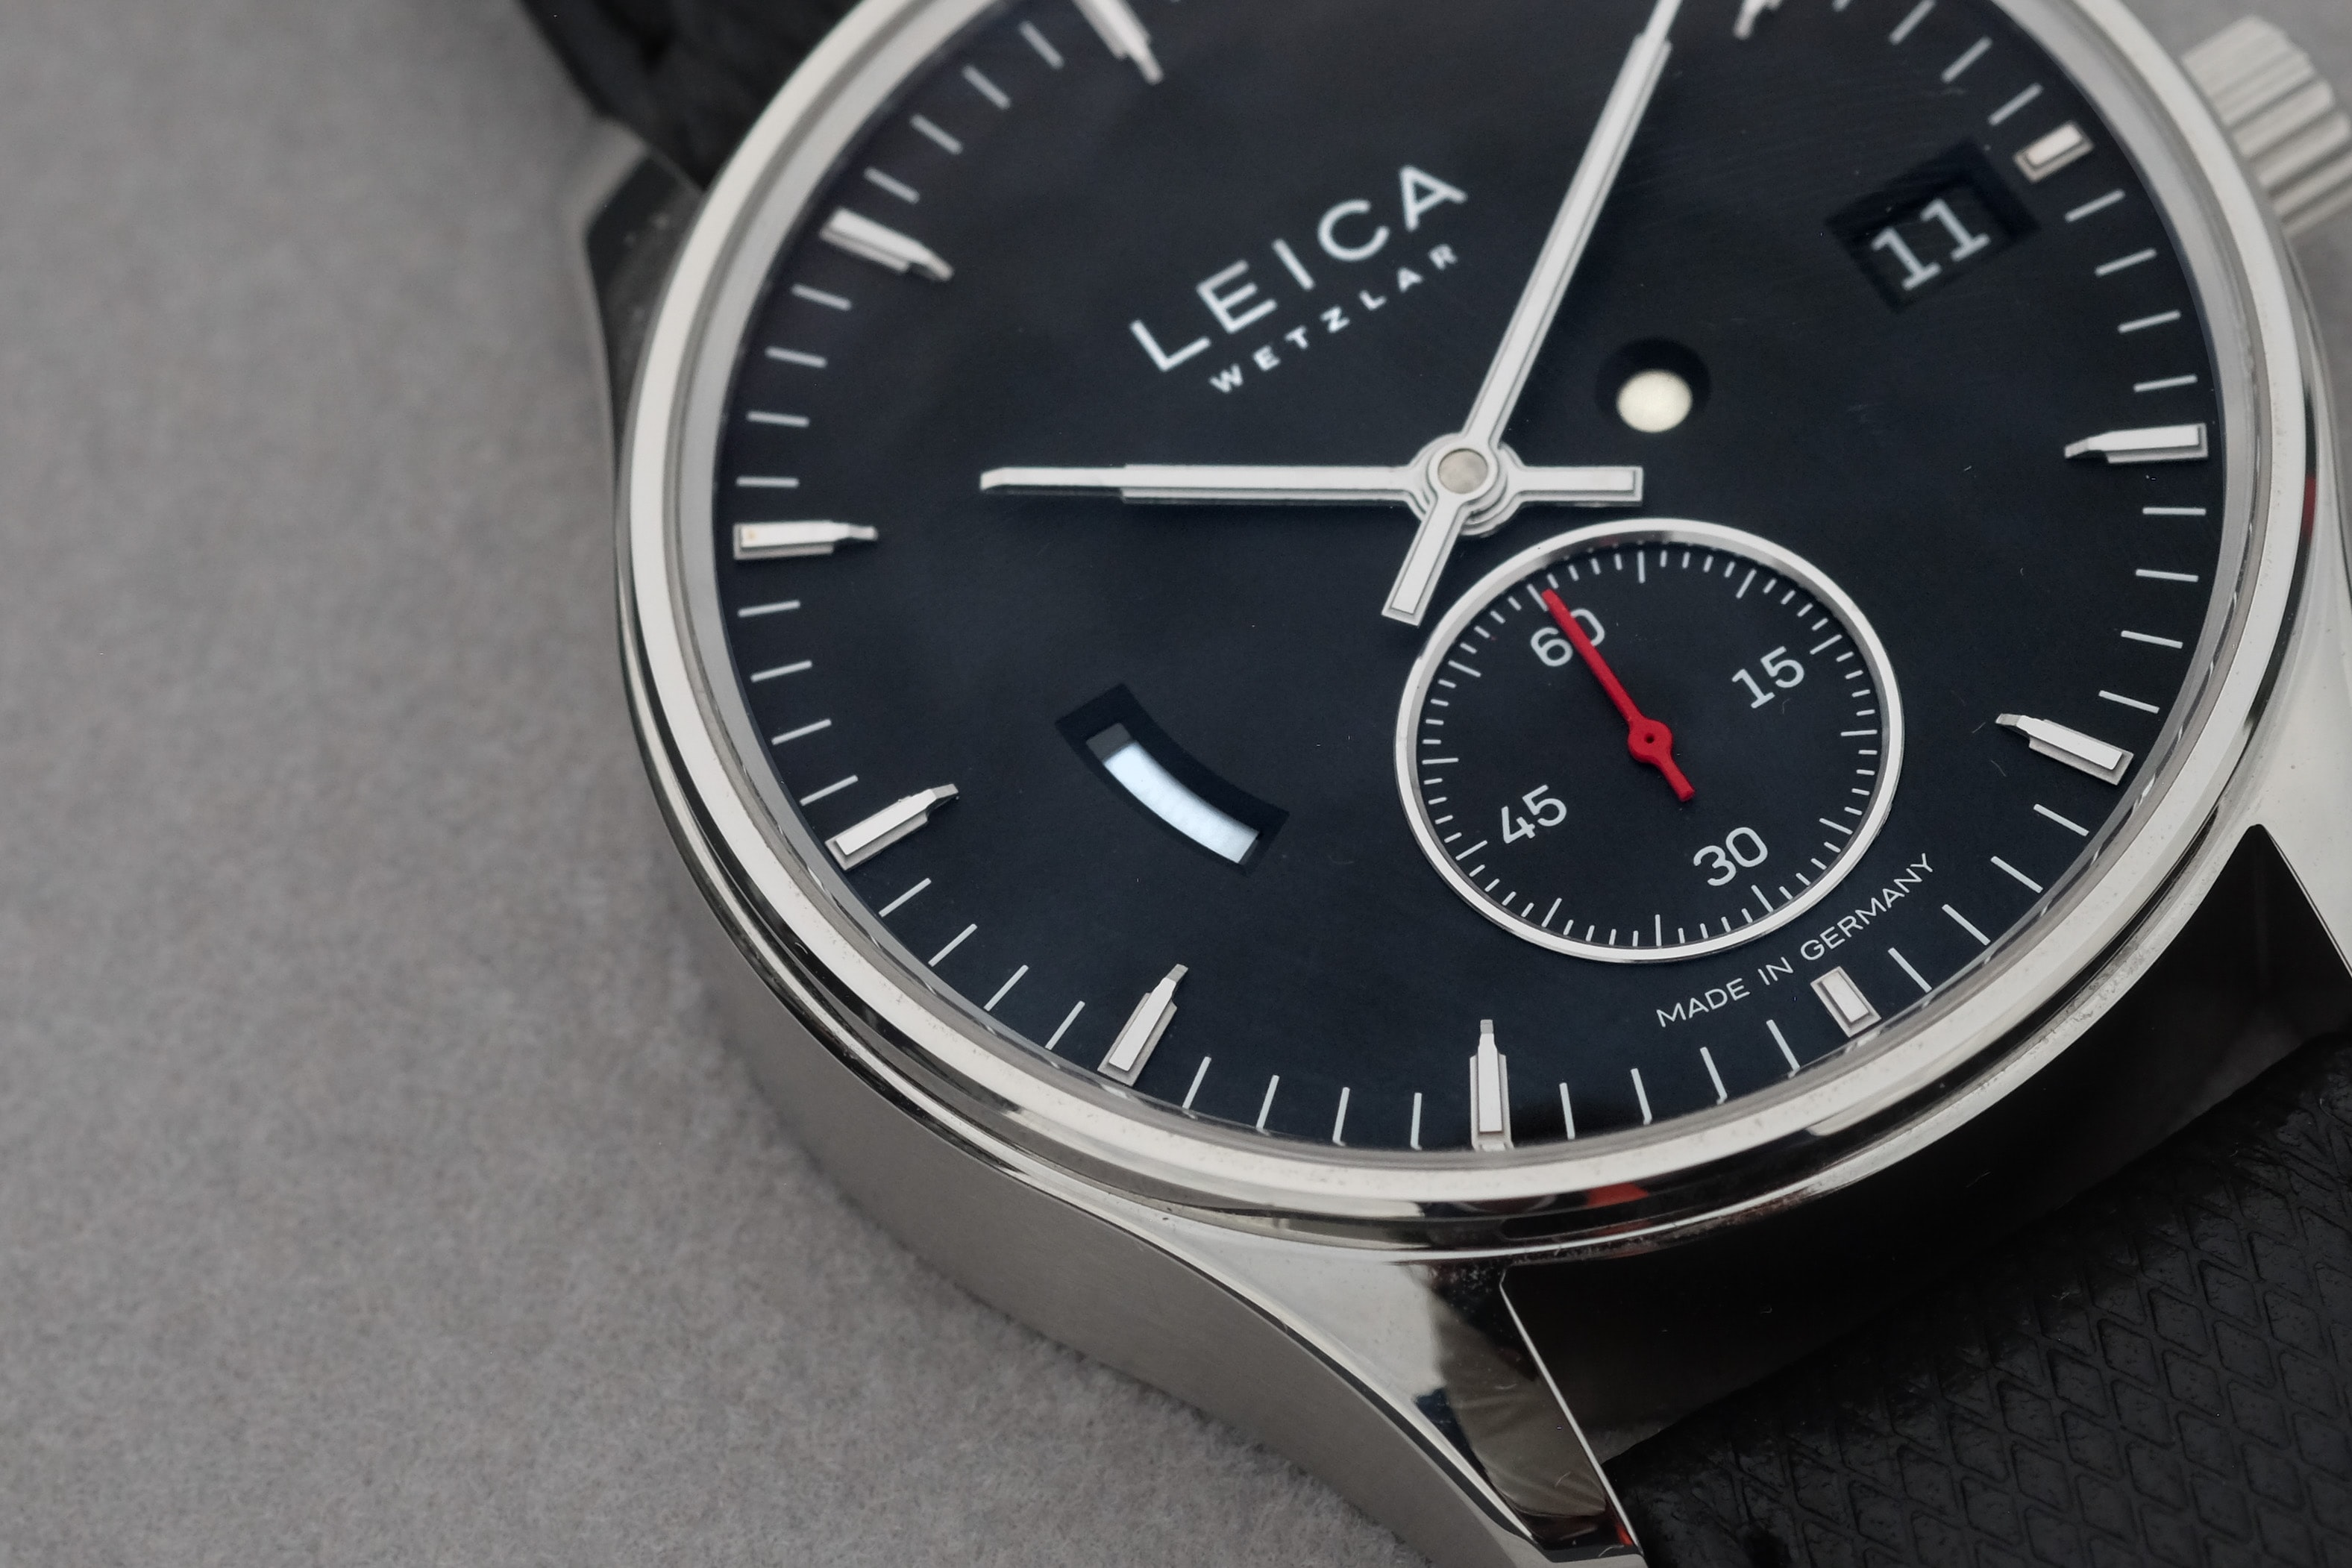 Introducing: The Leica L1 And L2 Watches (Live Pics & Details) Leica 4